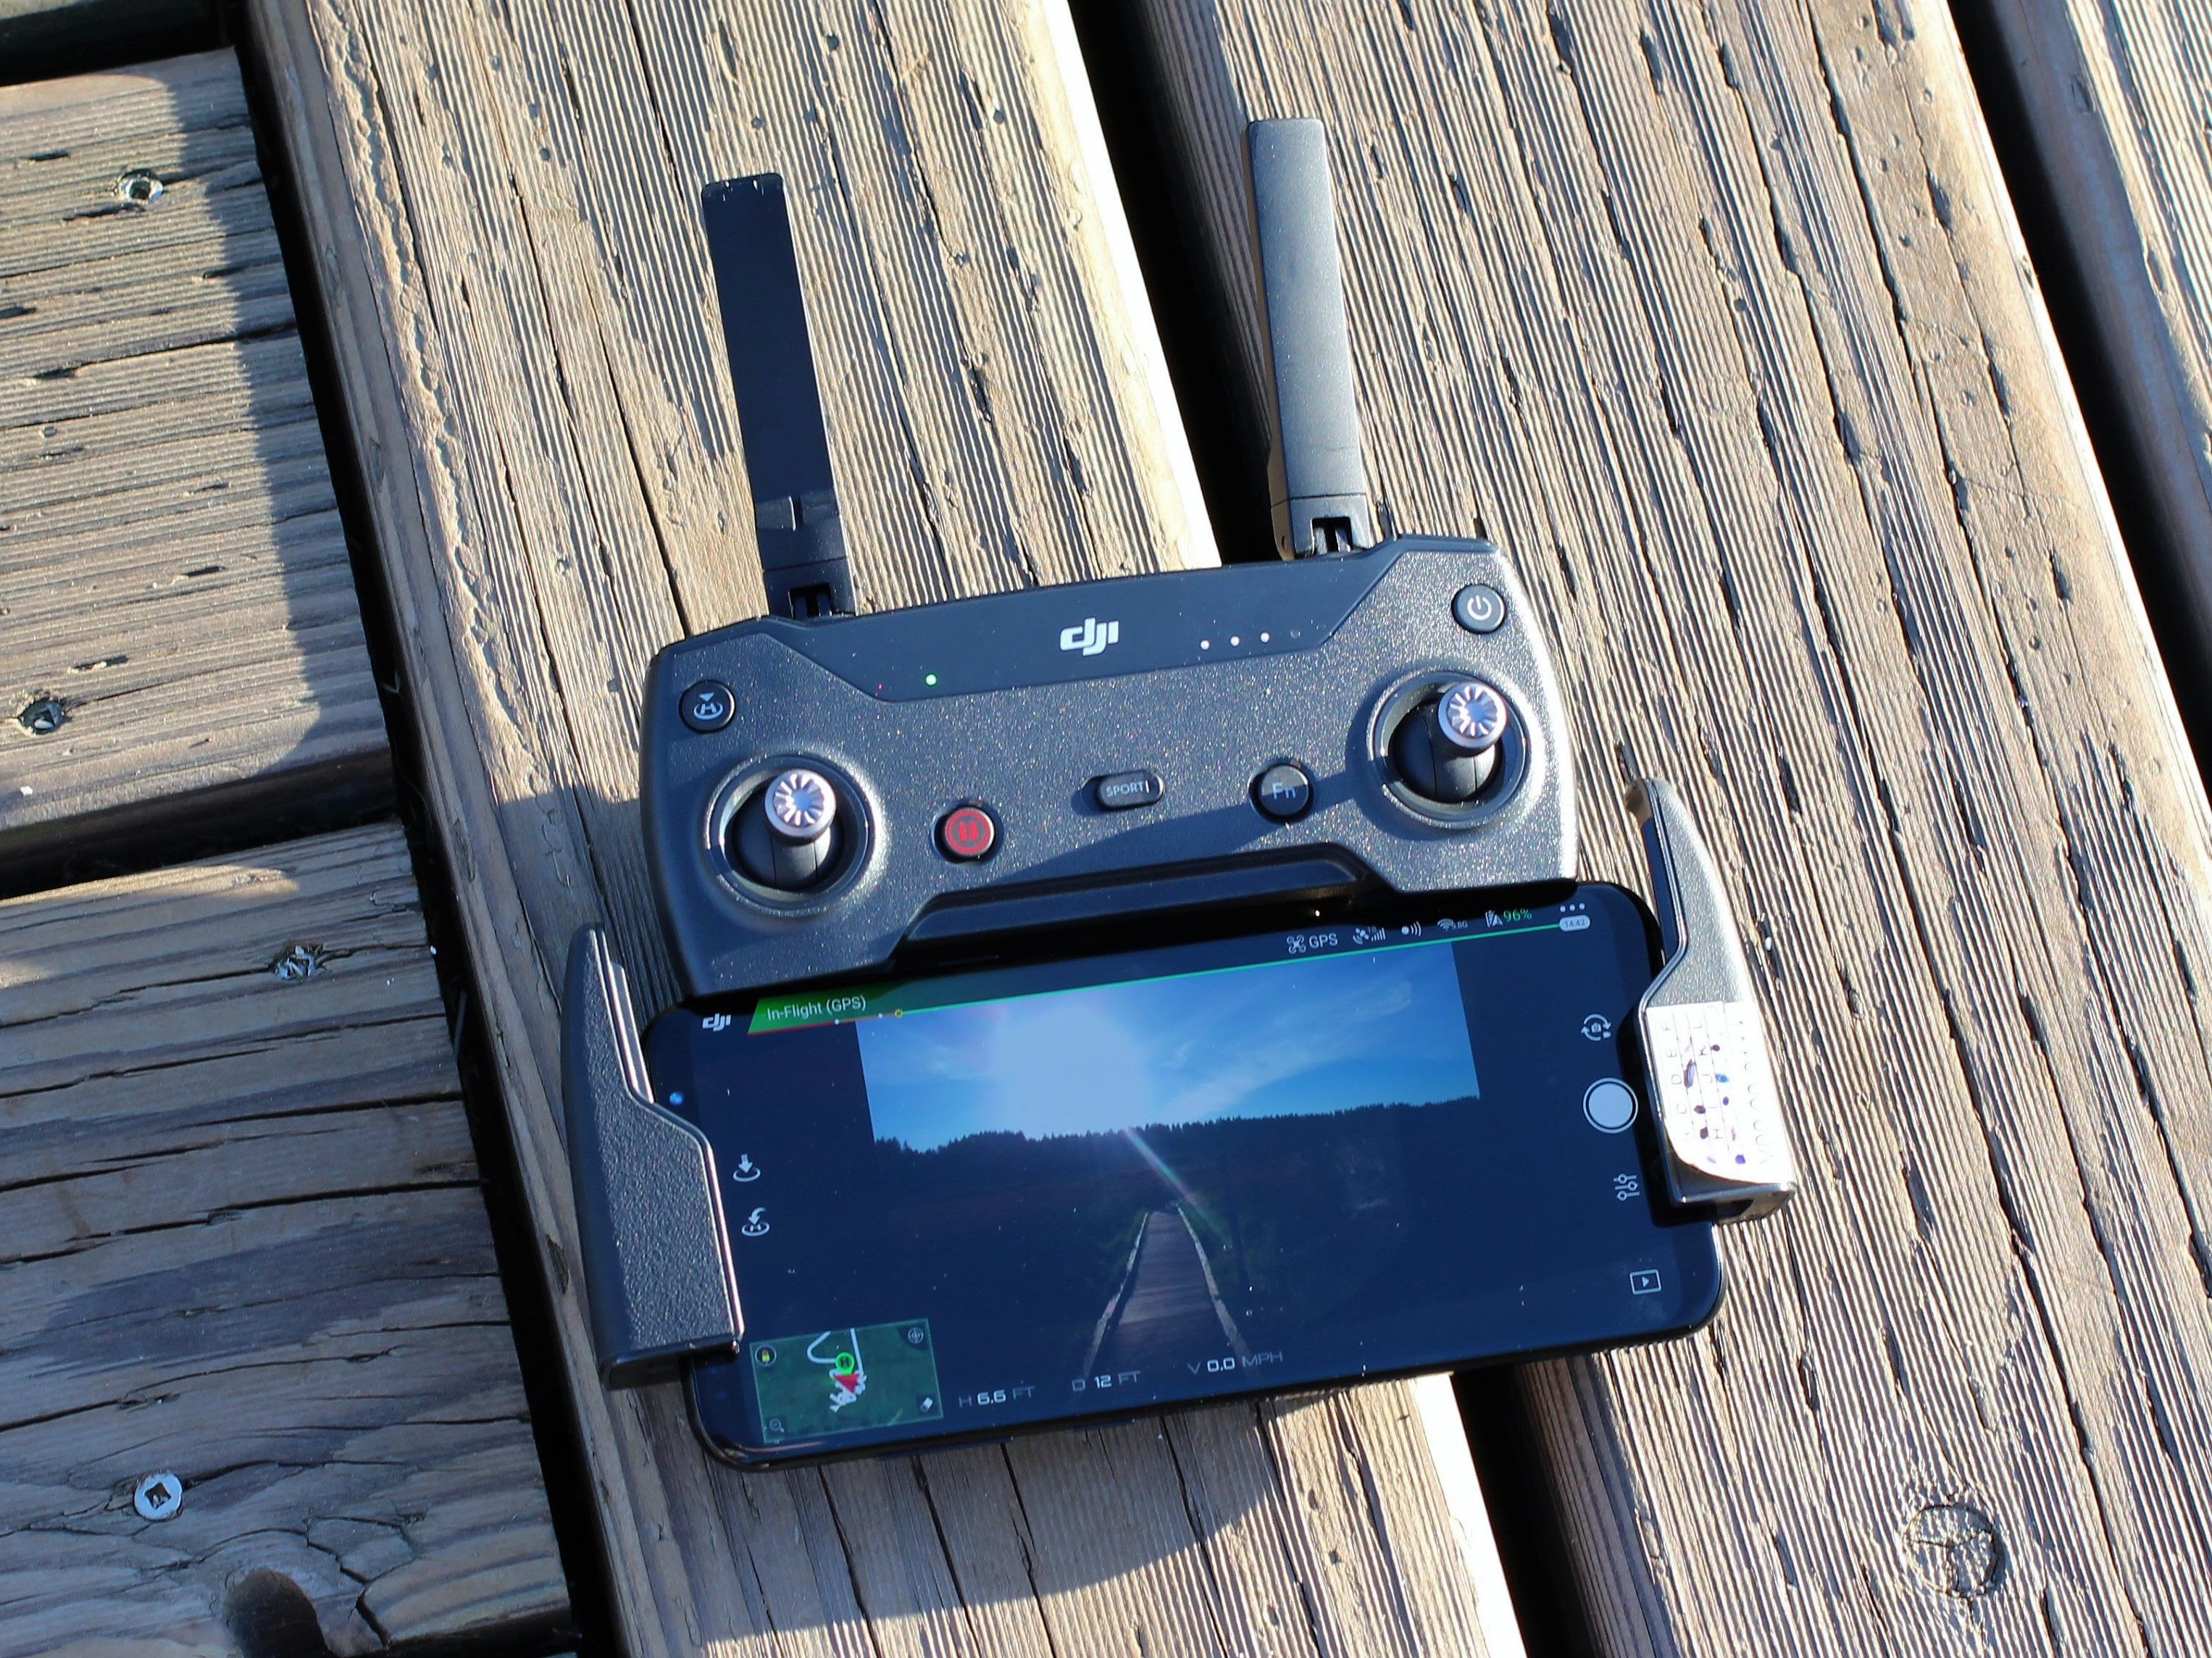 Dji Spark Review A Delightful Little Drone Weighed Down By An Topspeed Controls Commands N Game Manual Music Video There Are Dedicated Buttons On The Controller For Photo And Capture As Well Emergency Pause Button Return To Home